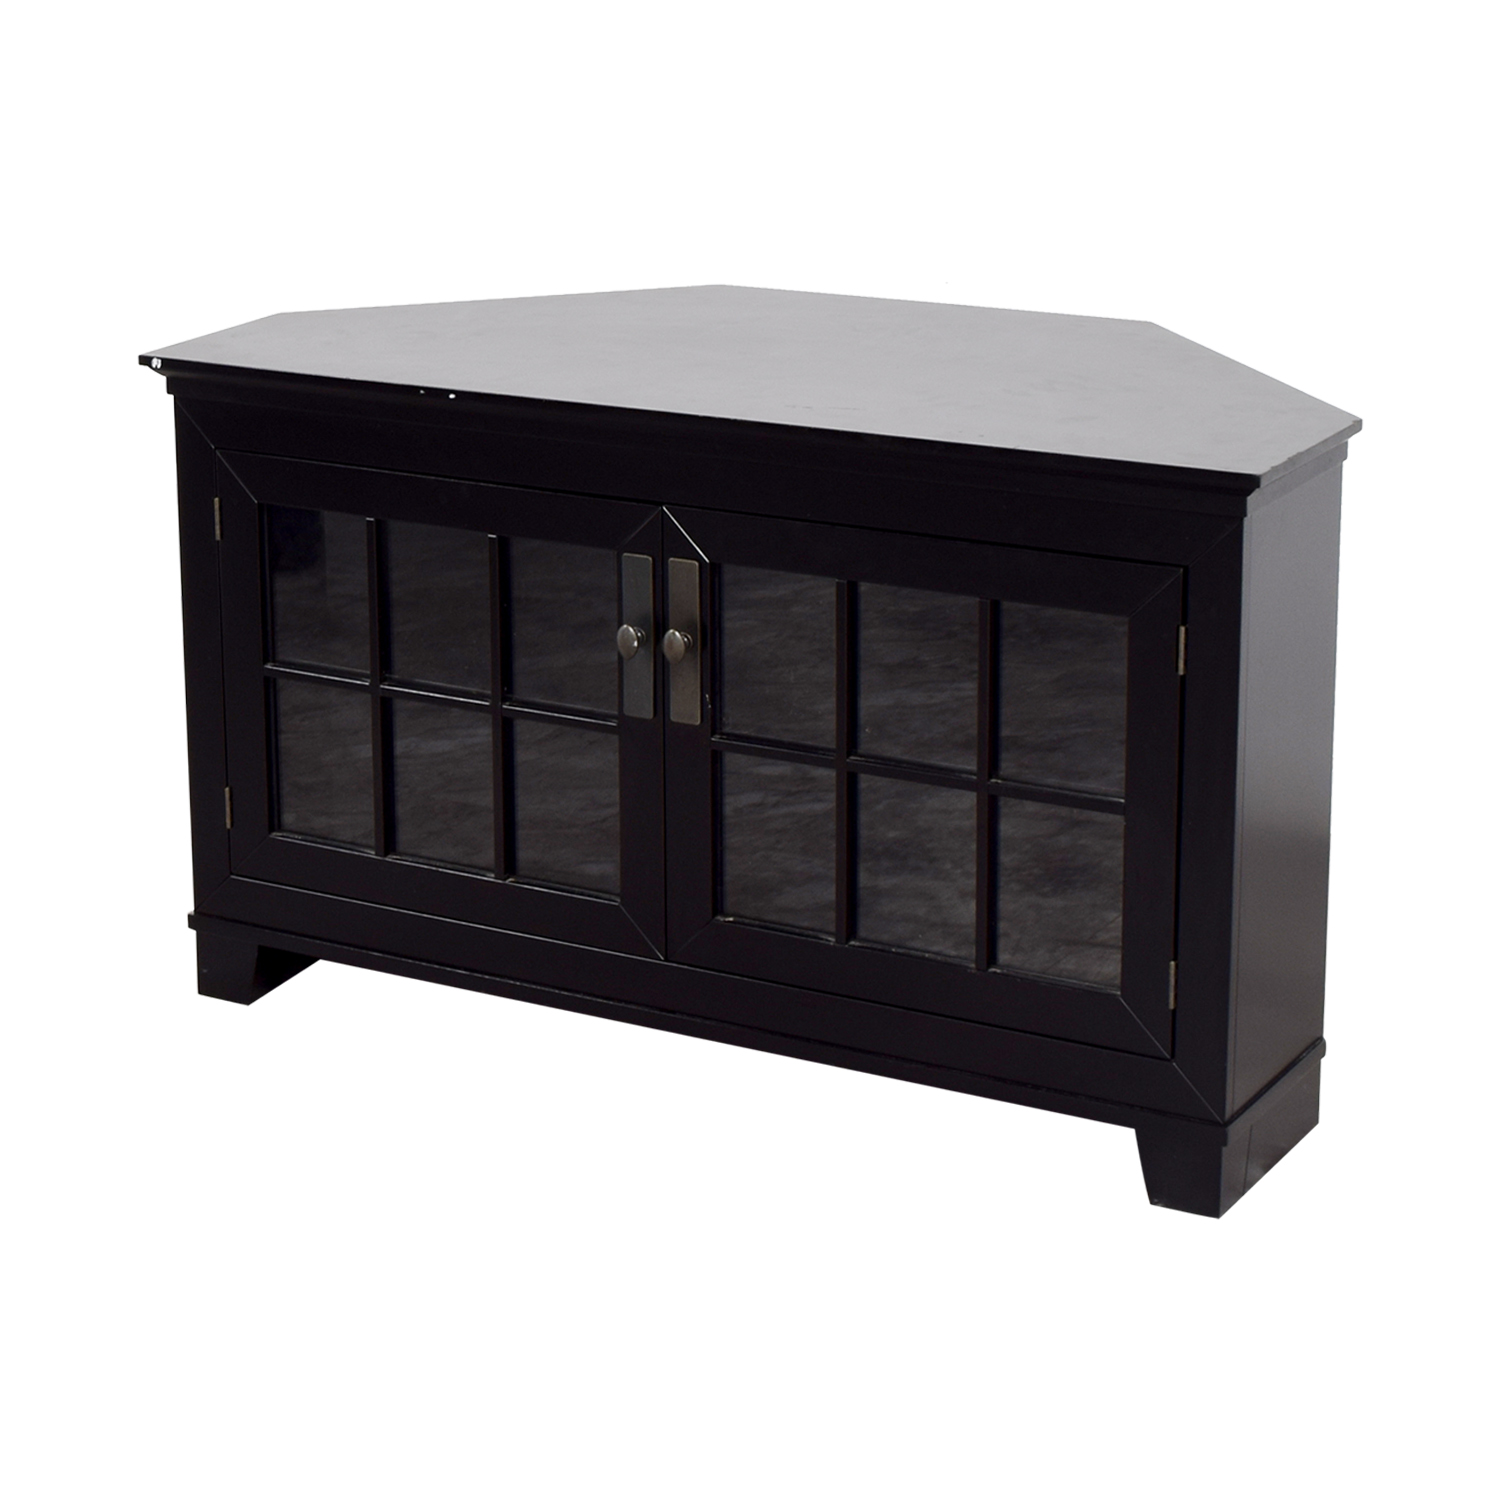 buy Crate & Barrel Crate & Barrel Wood and Glass Media Console online